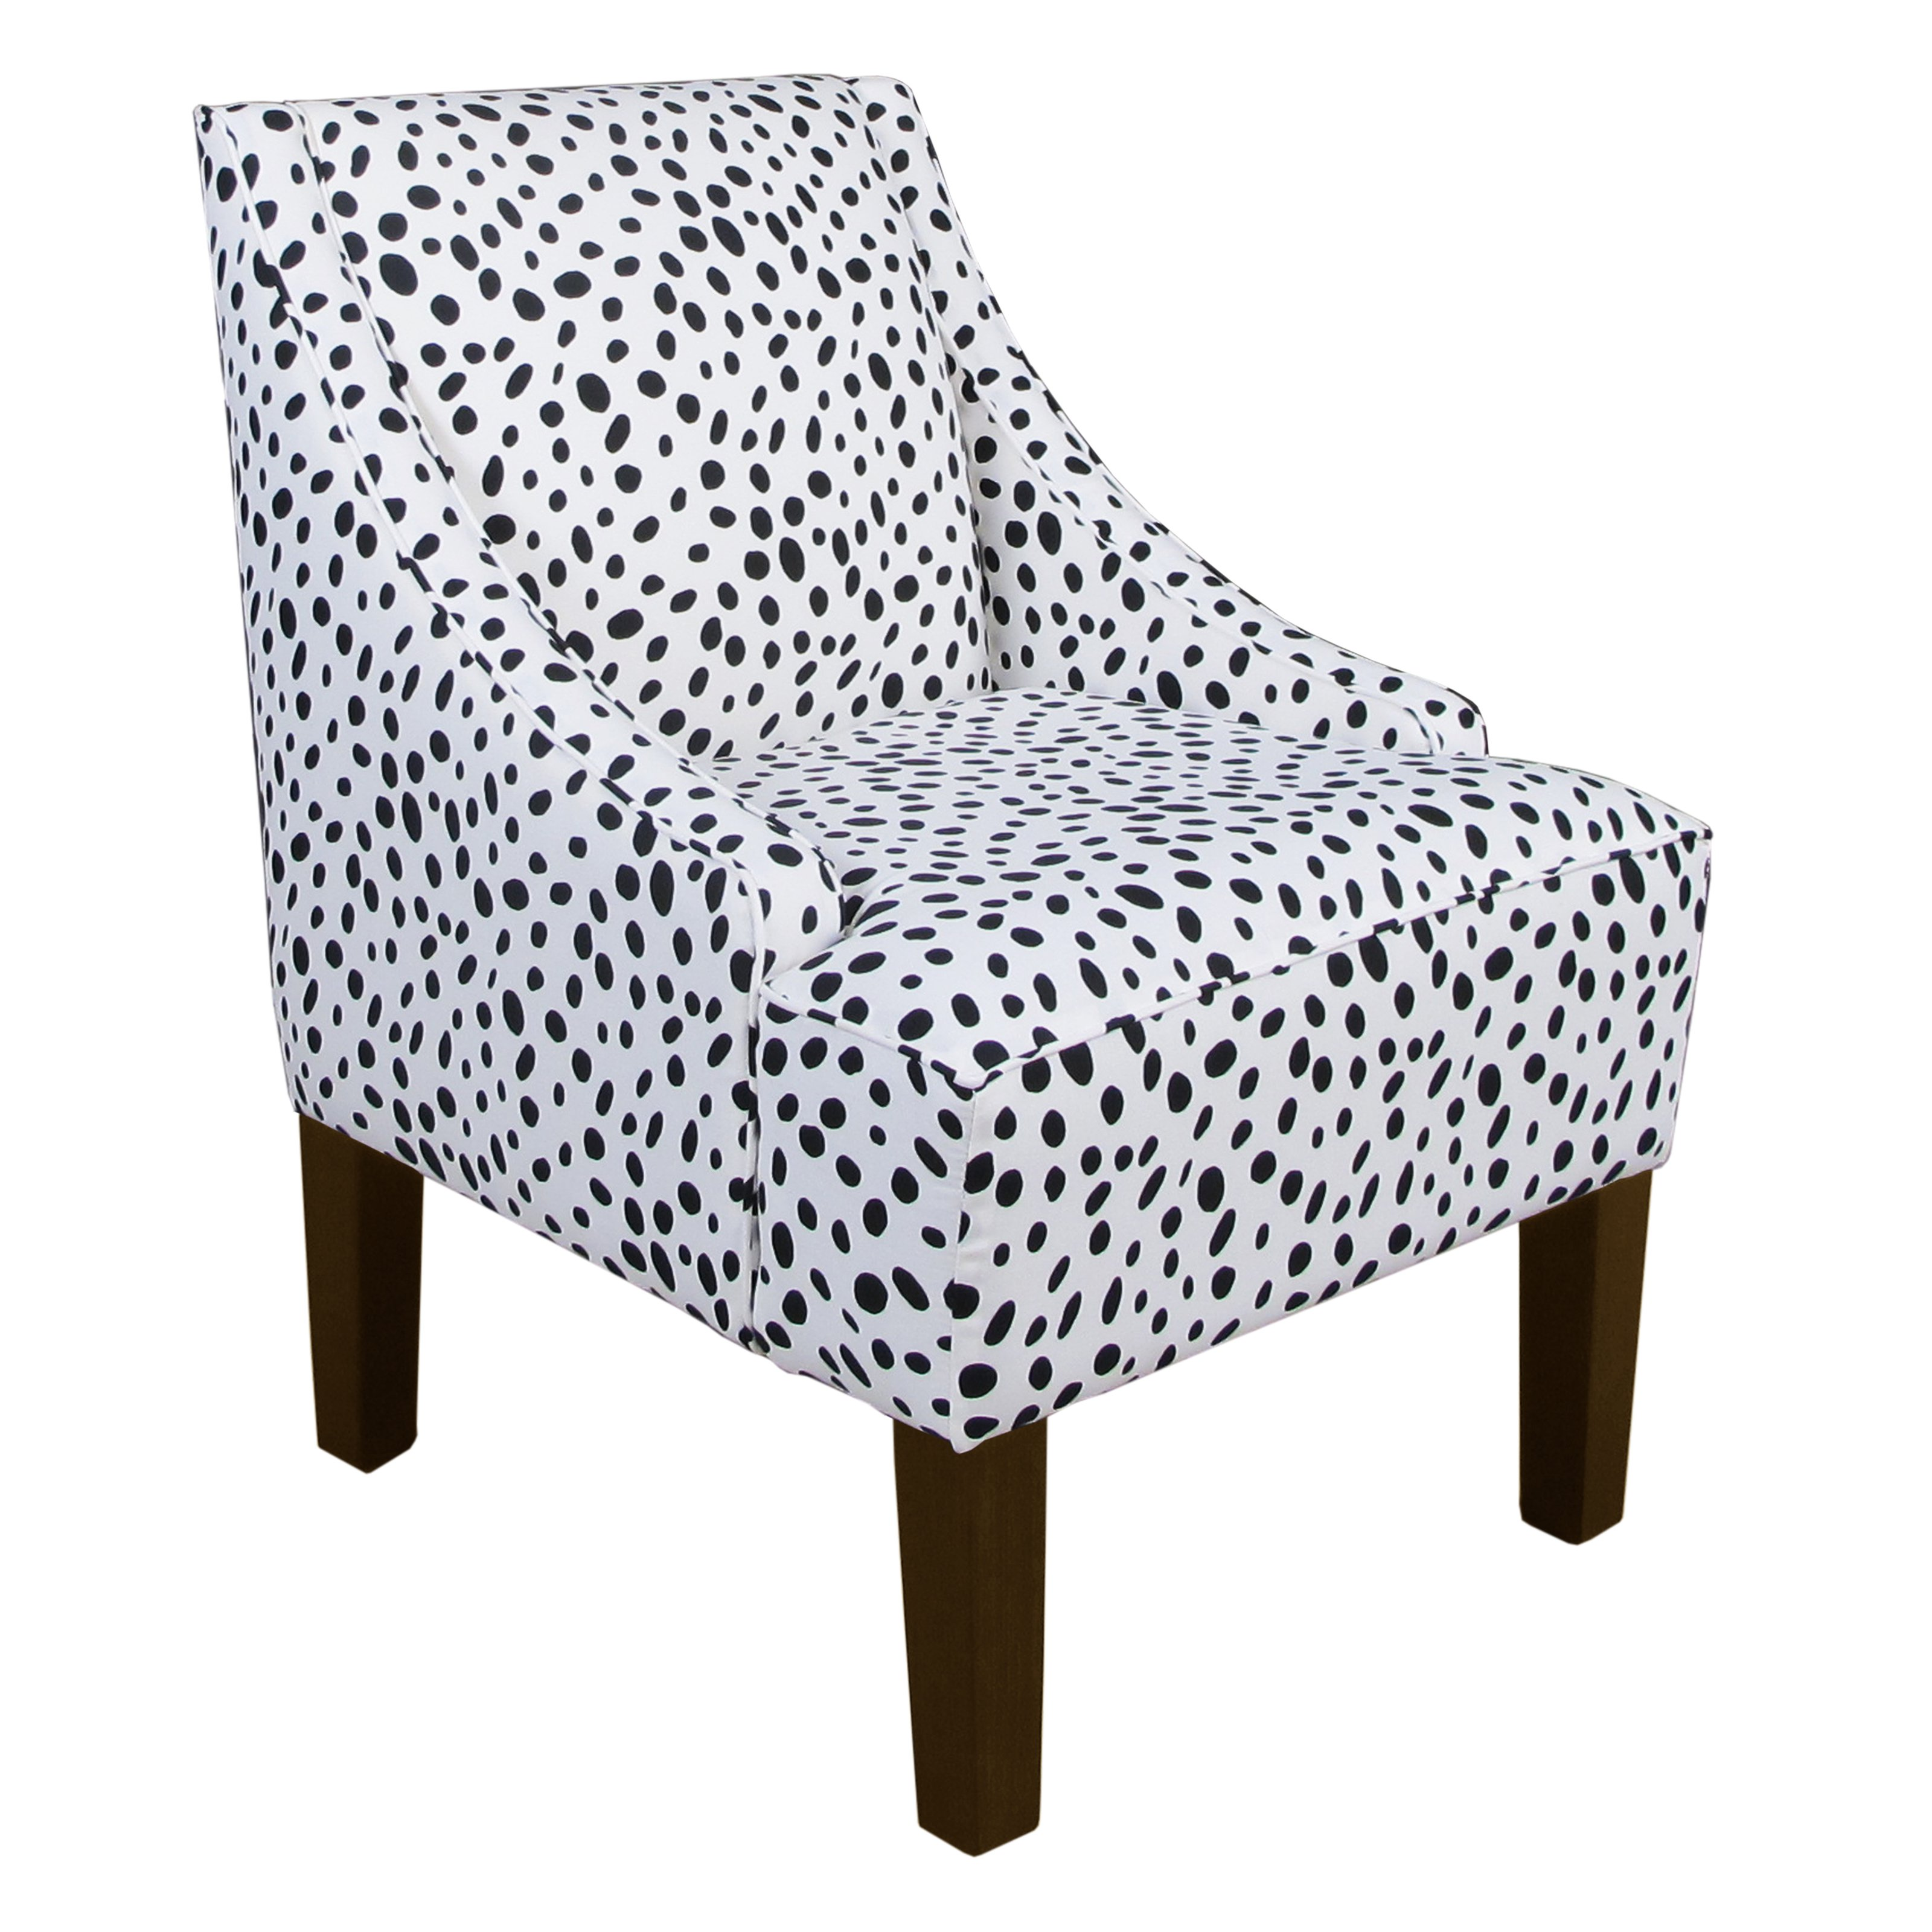 Superbe Skyline Swoop Arm Chair In Togo Black And White   Walmart.com